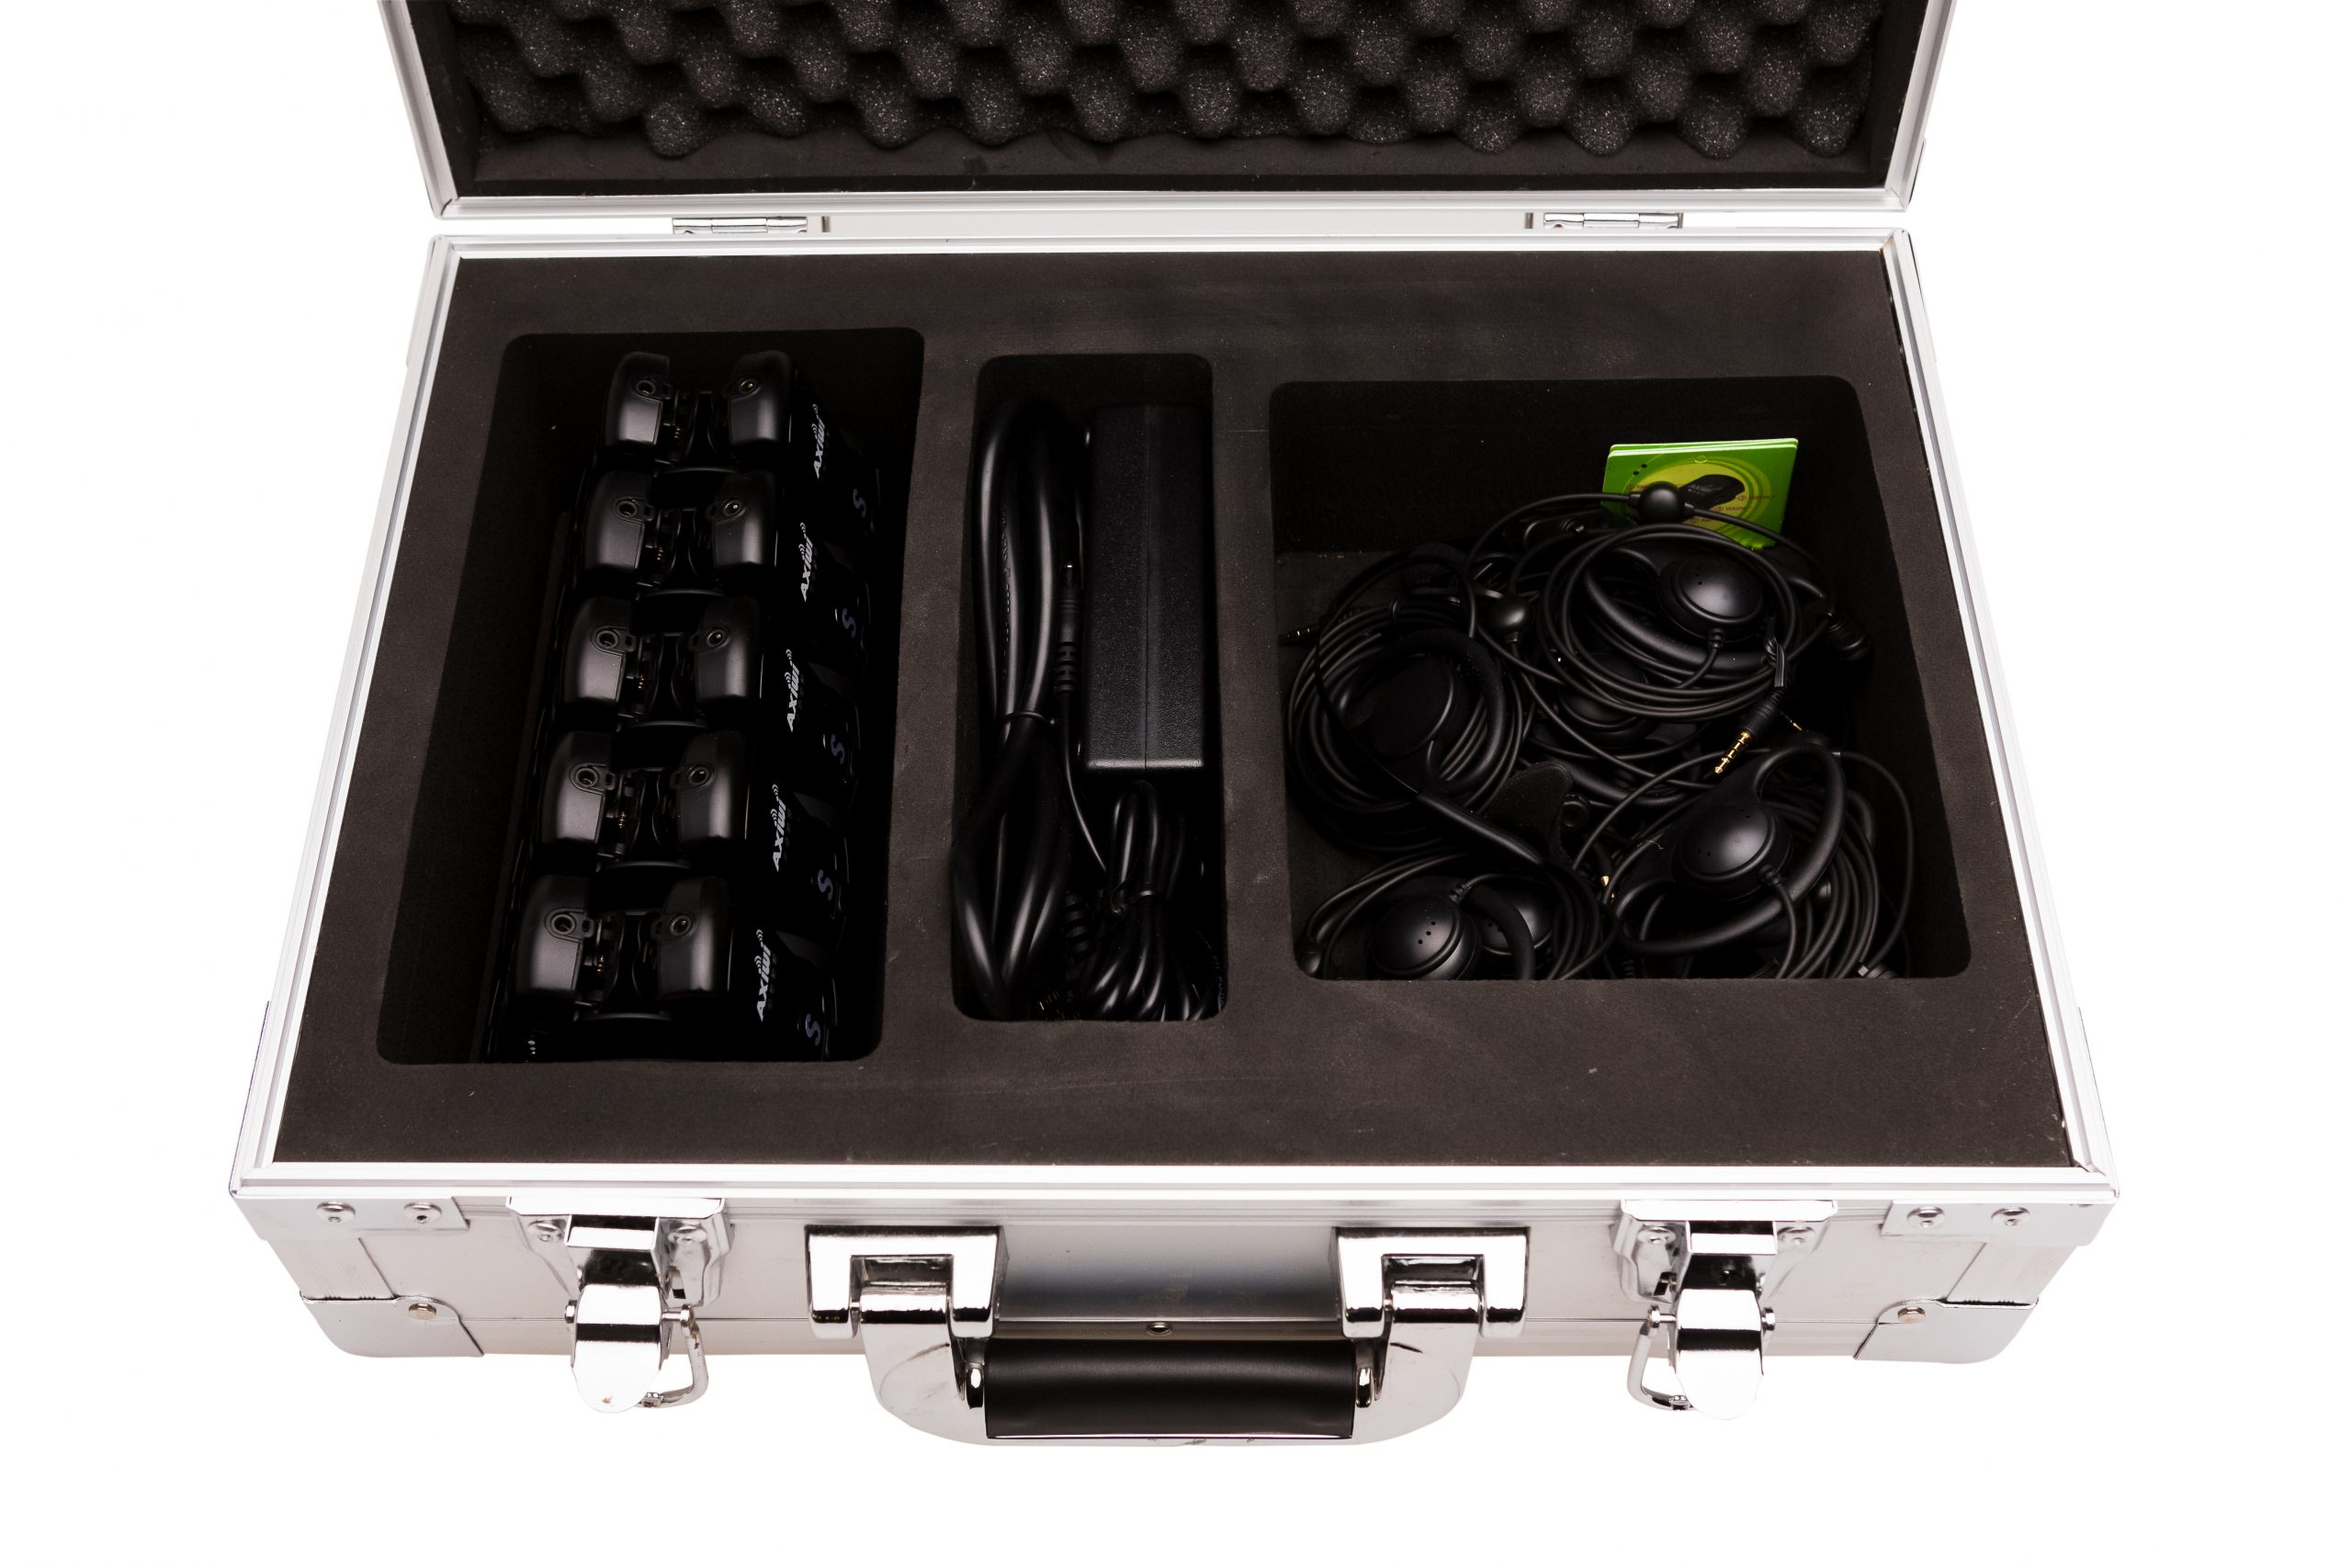 axiwi-tr-004-communication-set-10-axiwi-inside